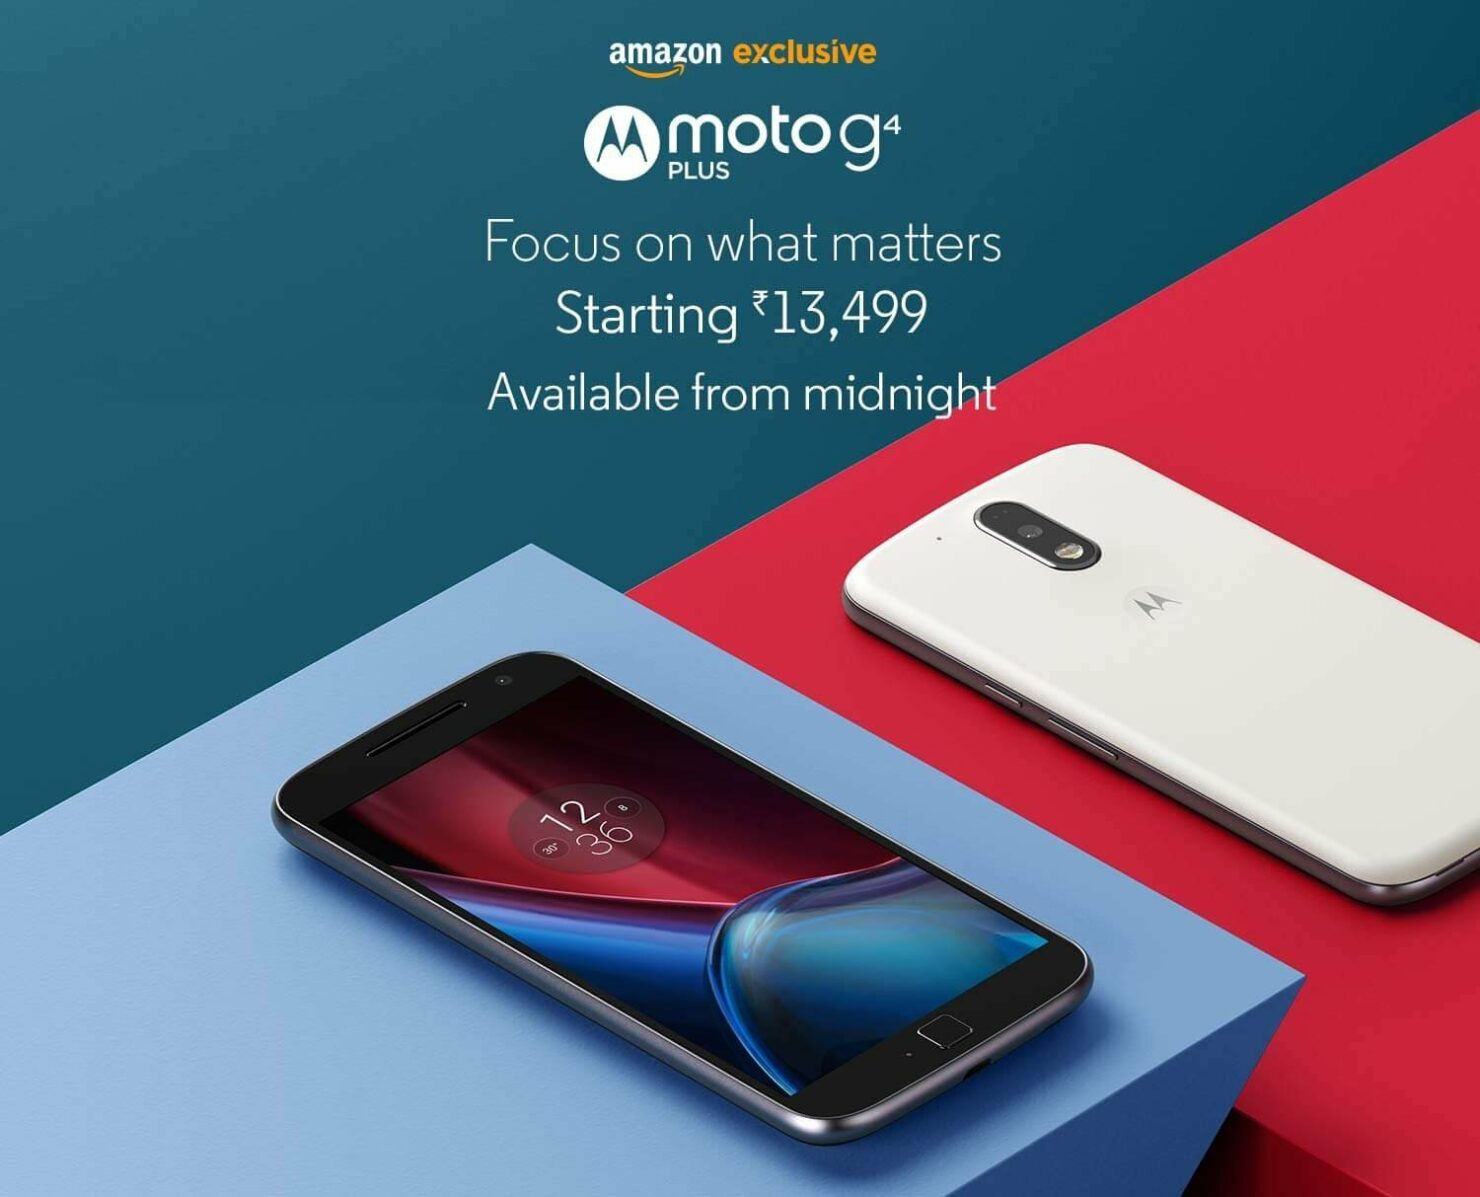 Moto G4 And Moto G4 Plus Have Officially Been Announced – Offer Consumers A Vast Number Of Hardware Options